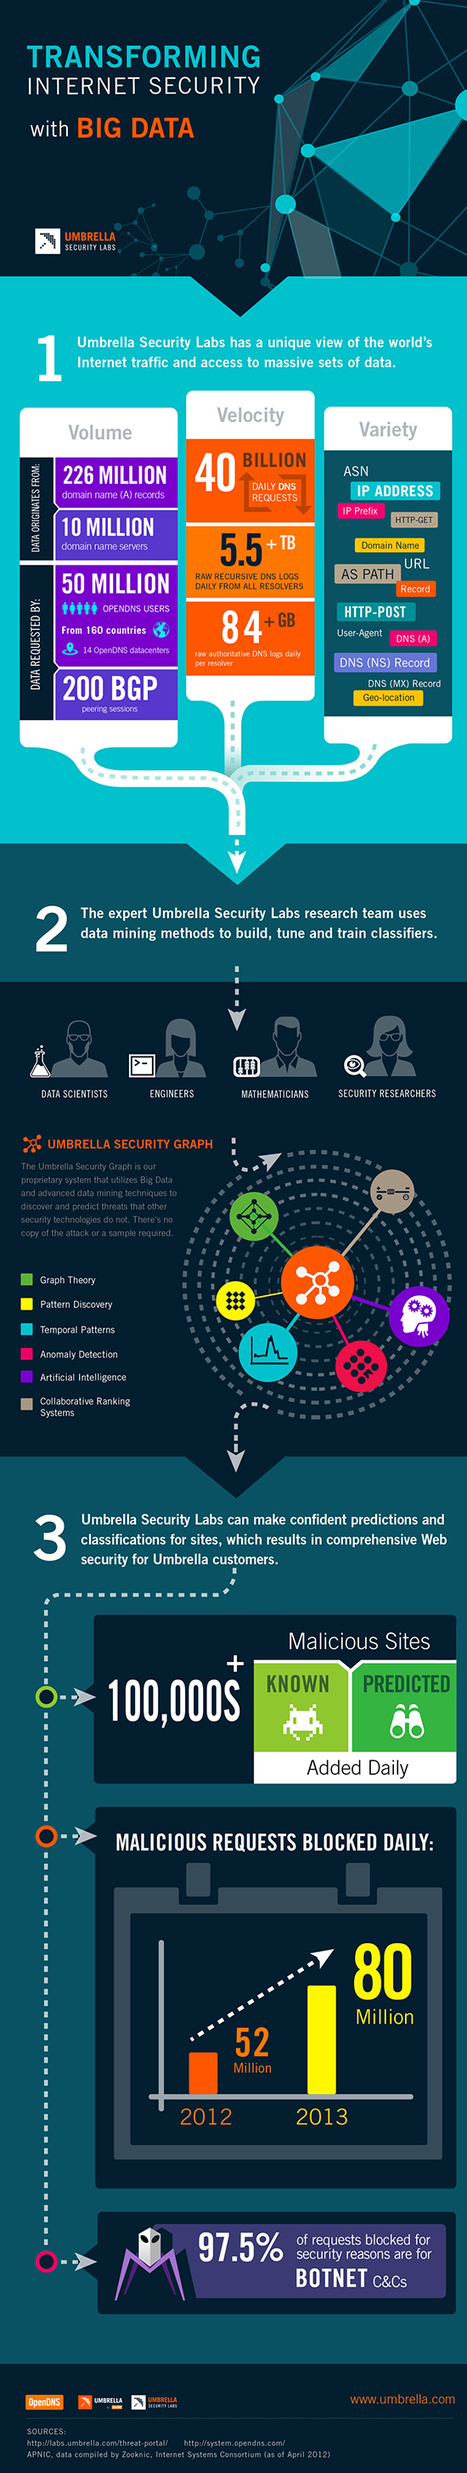 INFOGRAPHIC: How Umbrella Security Labs Delivers Advanced Malware Protection | Cloud Central | Scoop.it